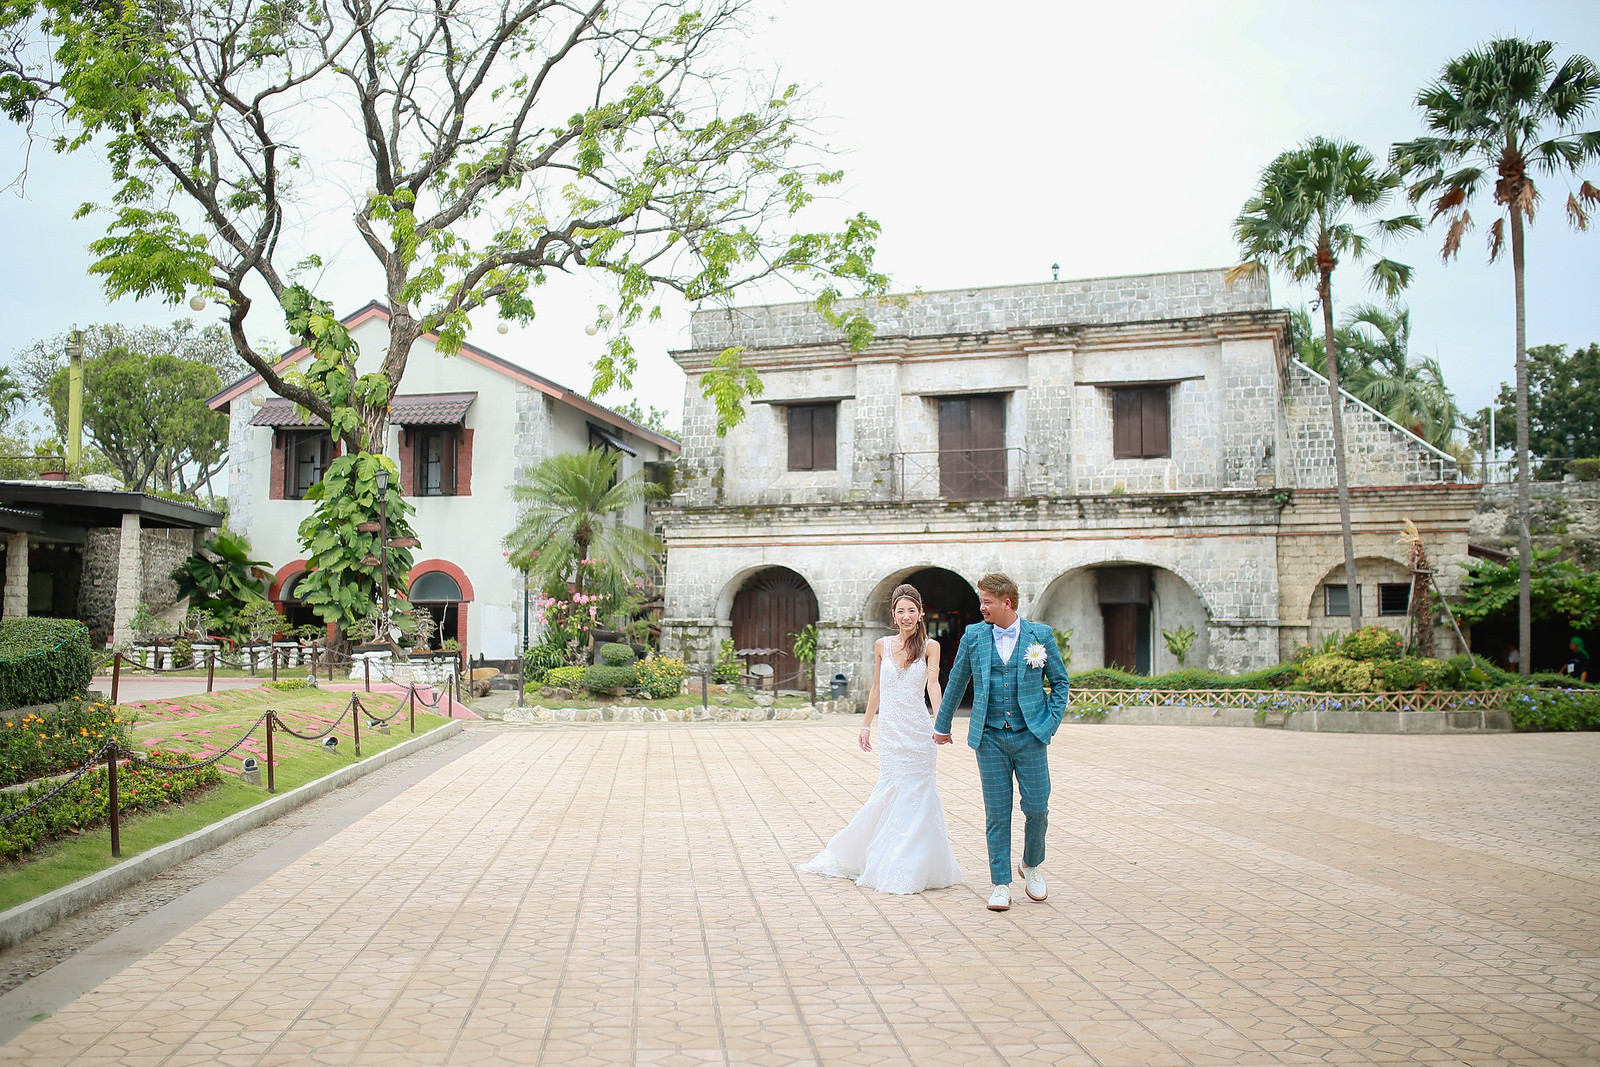 Cebu Pre Wedding Engagement Session, Cebu Pre Wedding Photographer